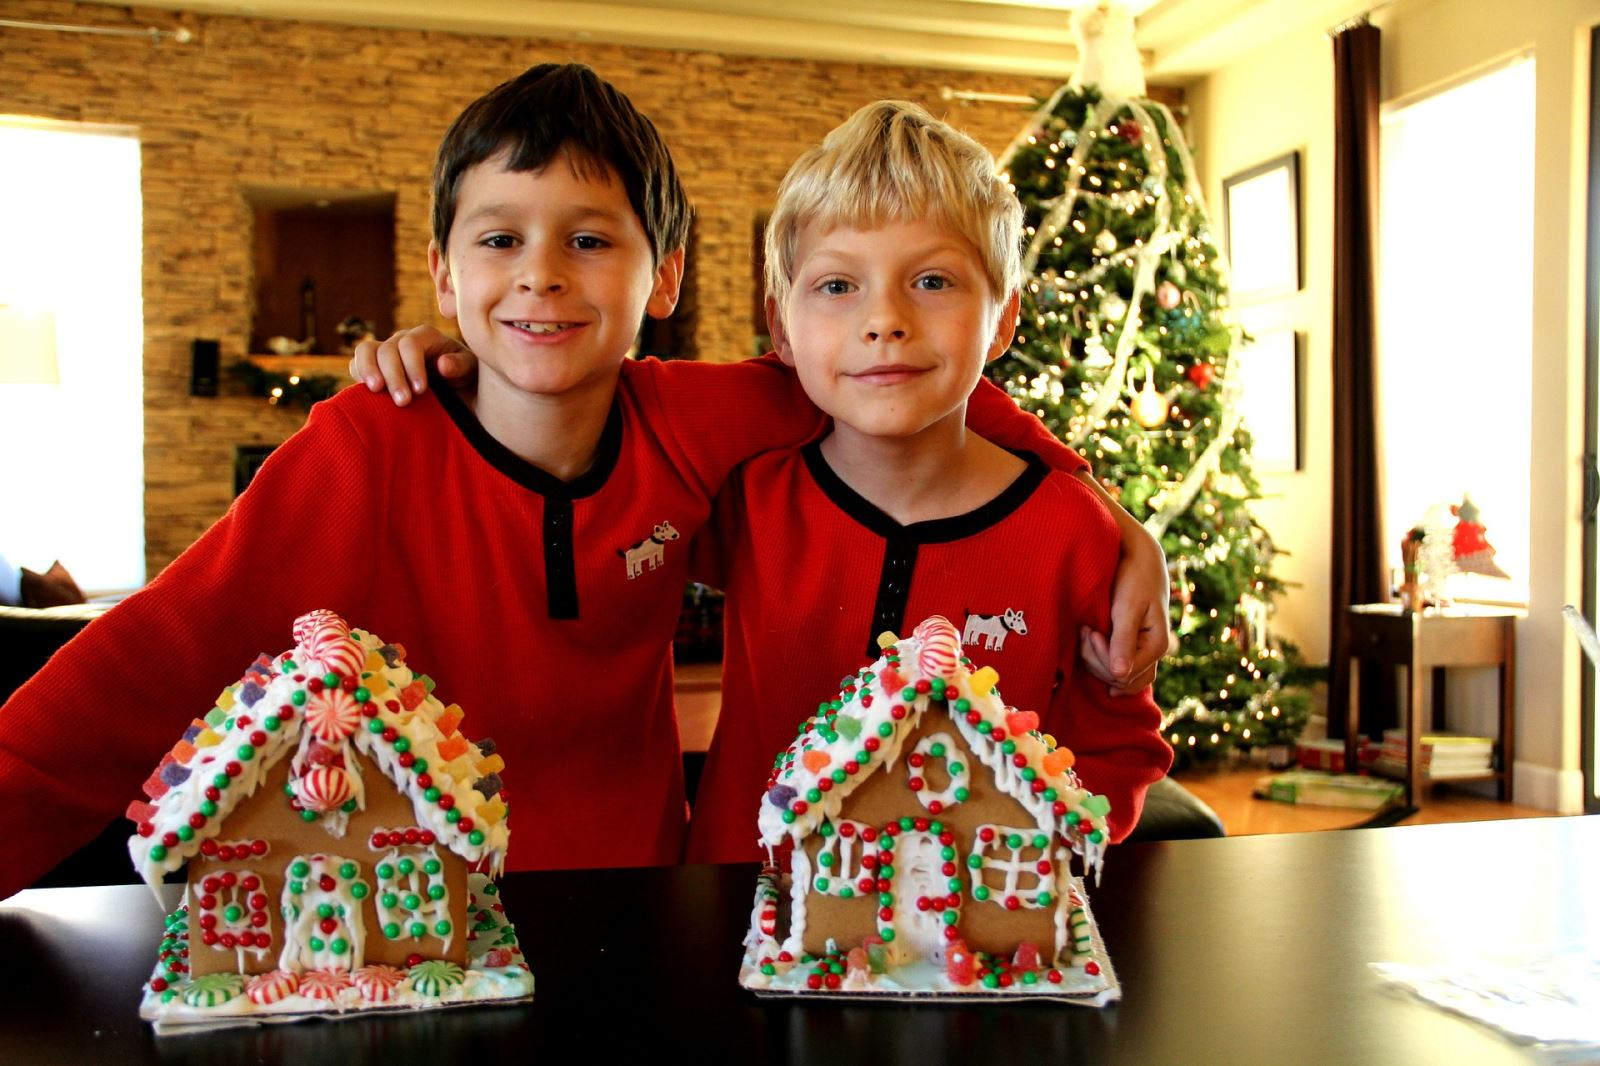 Two boys decorating gingerbread